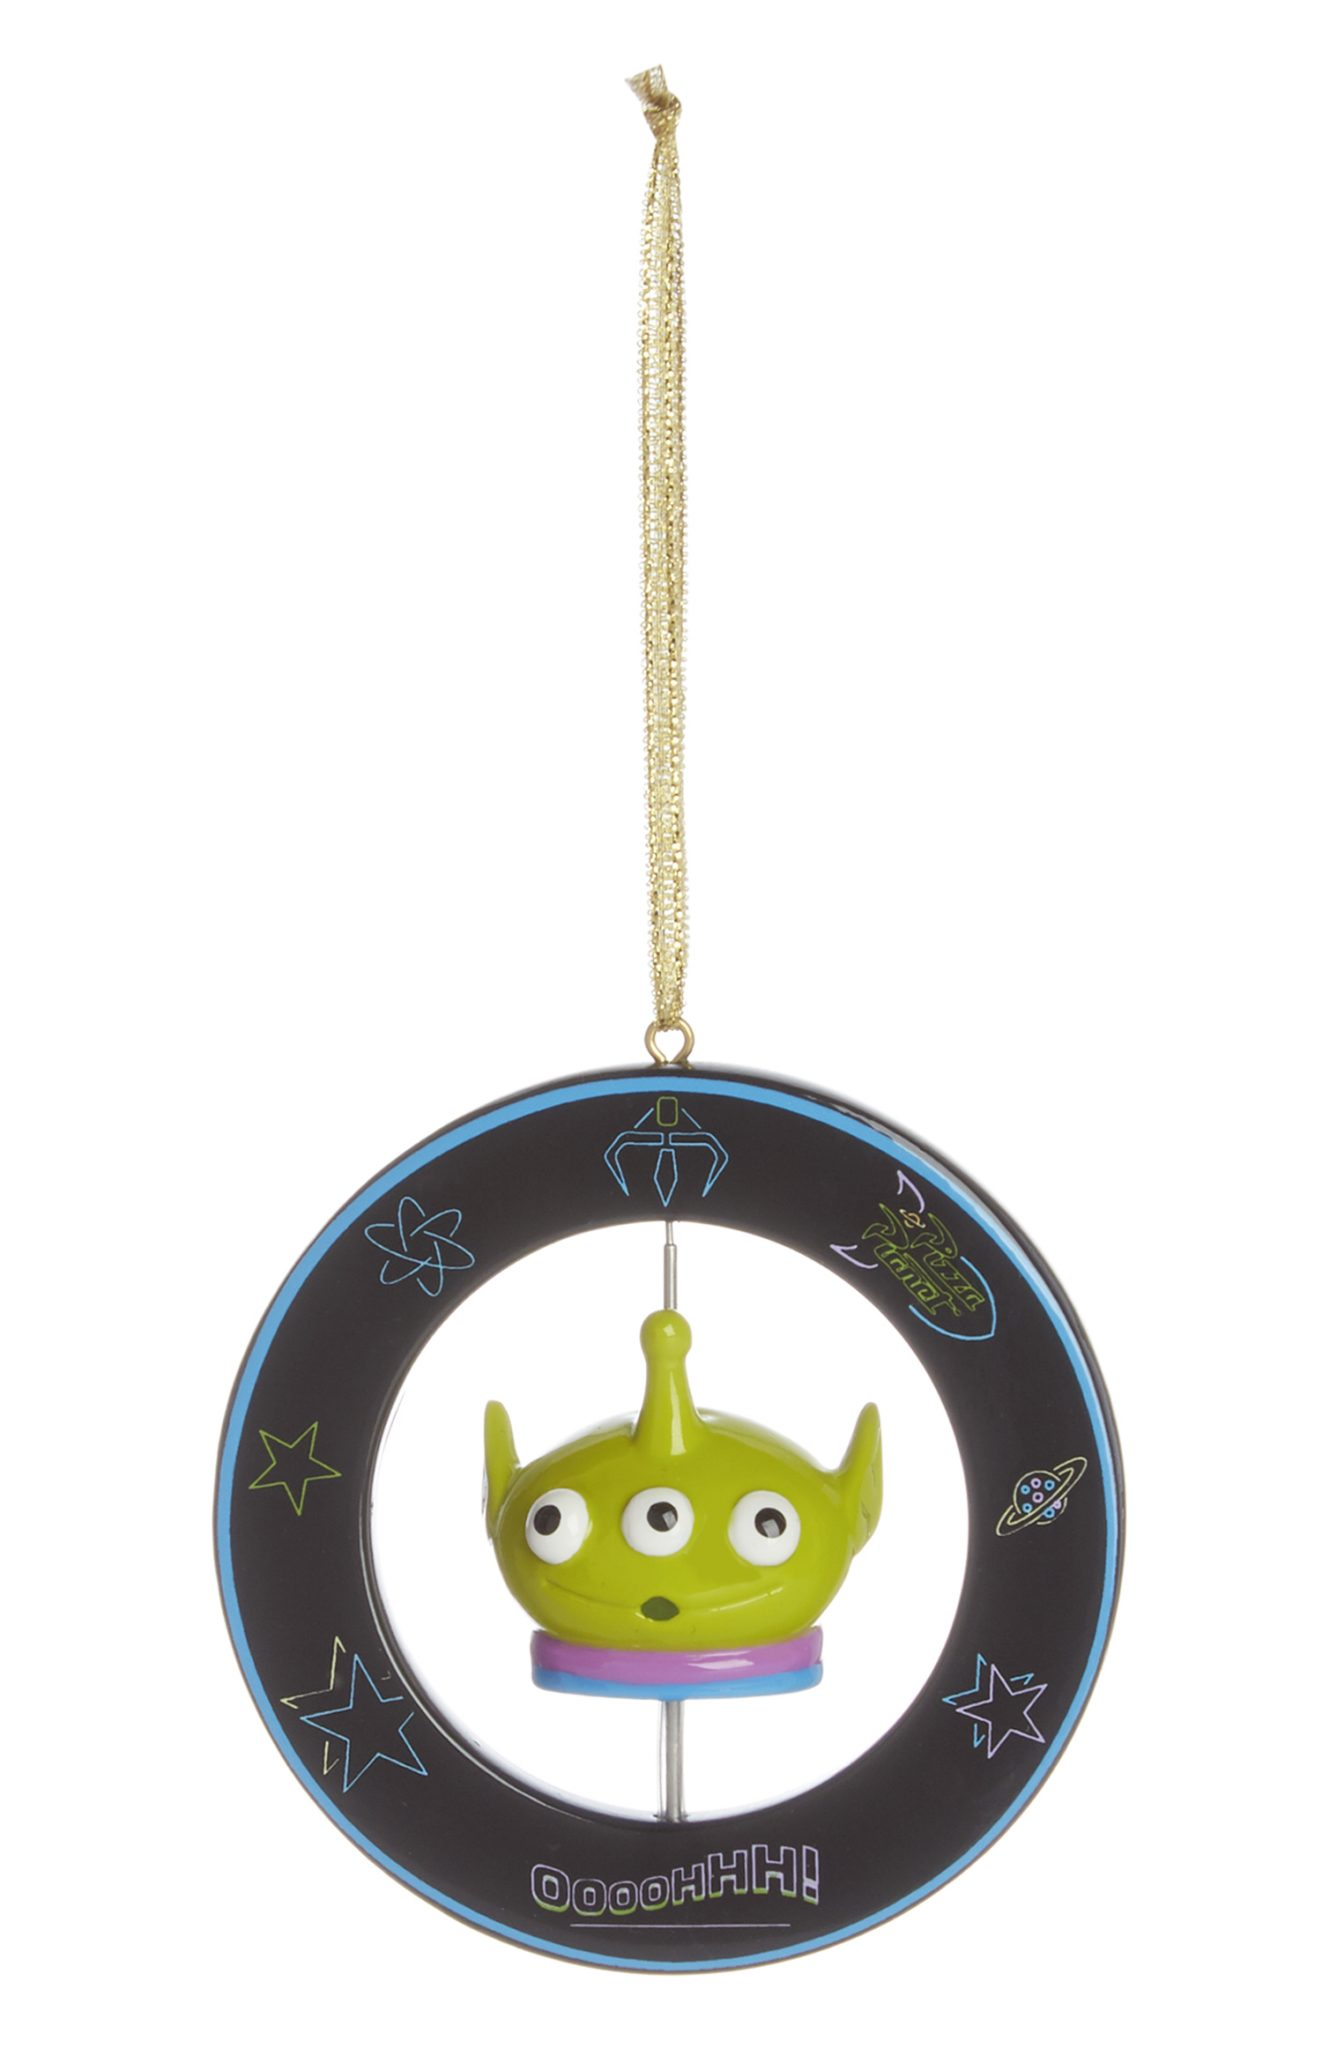 Penneys Have Released Disney Christmas Baubles And They Are